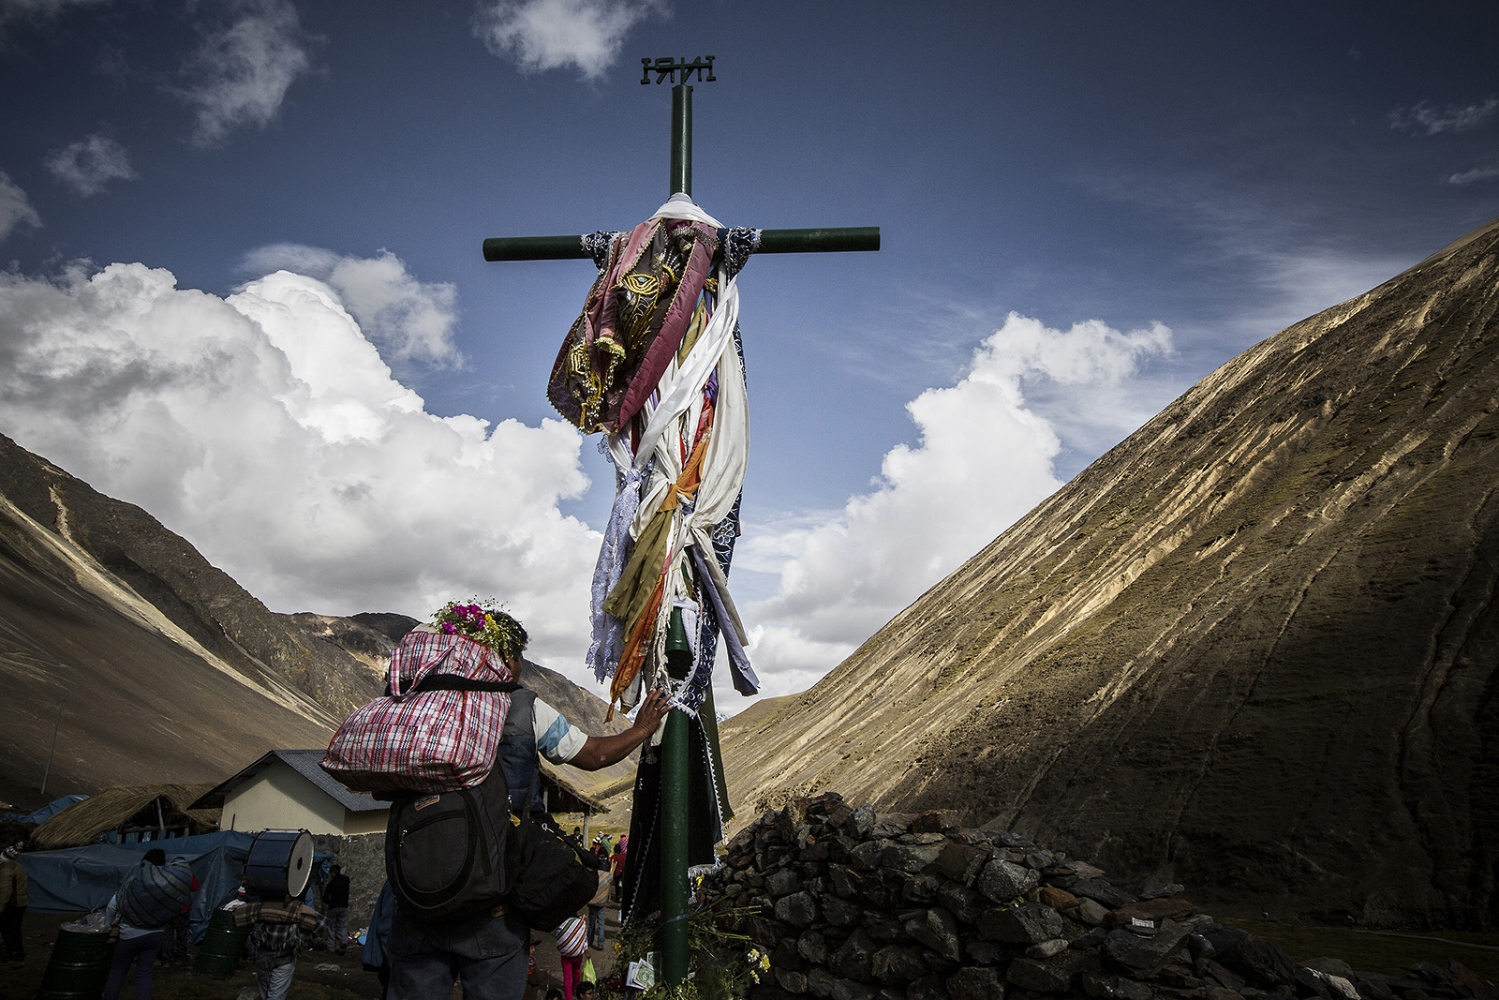 The pilgrimage follows the crosses on an 8km procession from the Mahuayani village to the Sinakara glacier, 5000m hig.